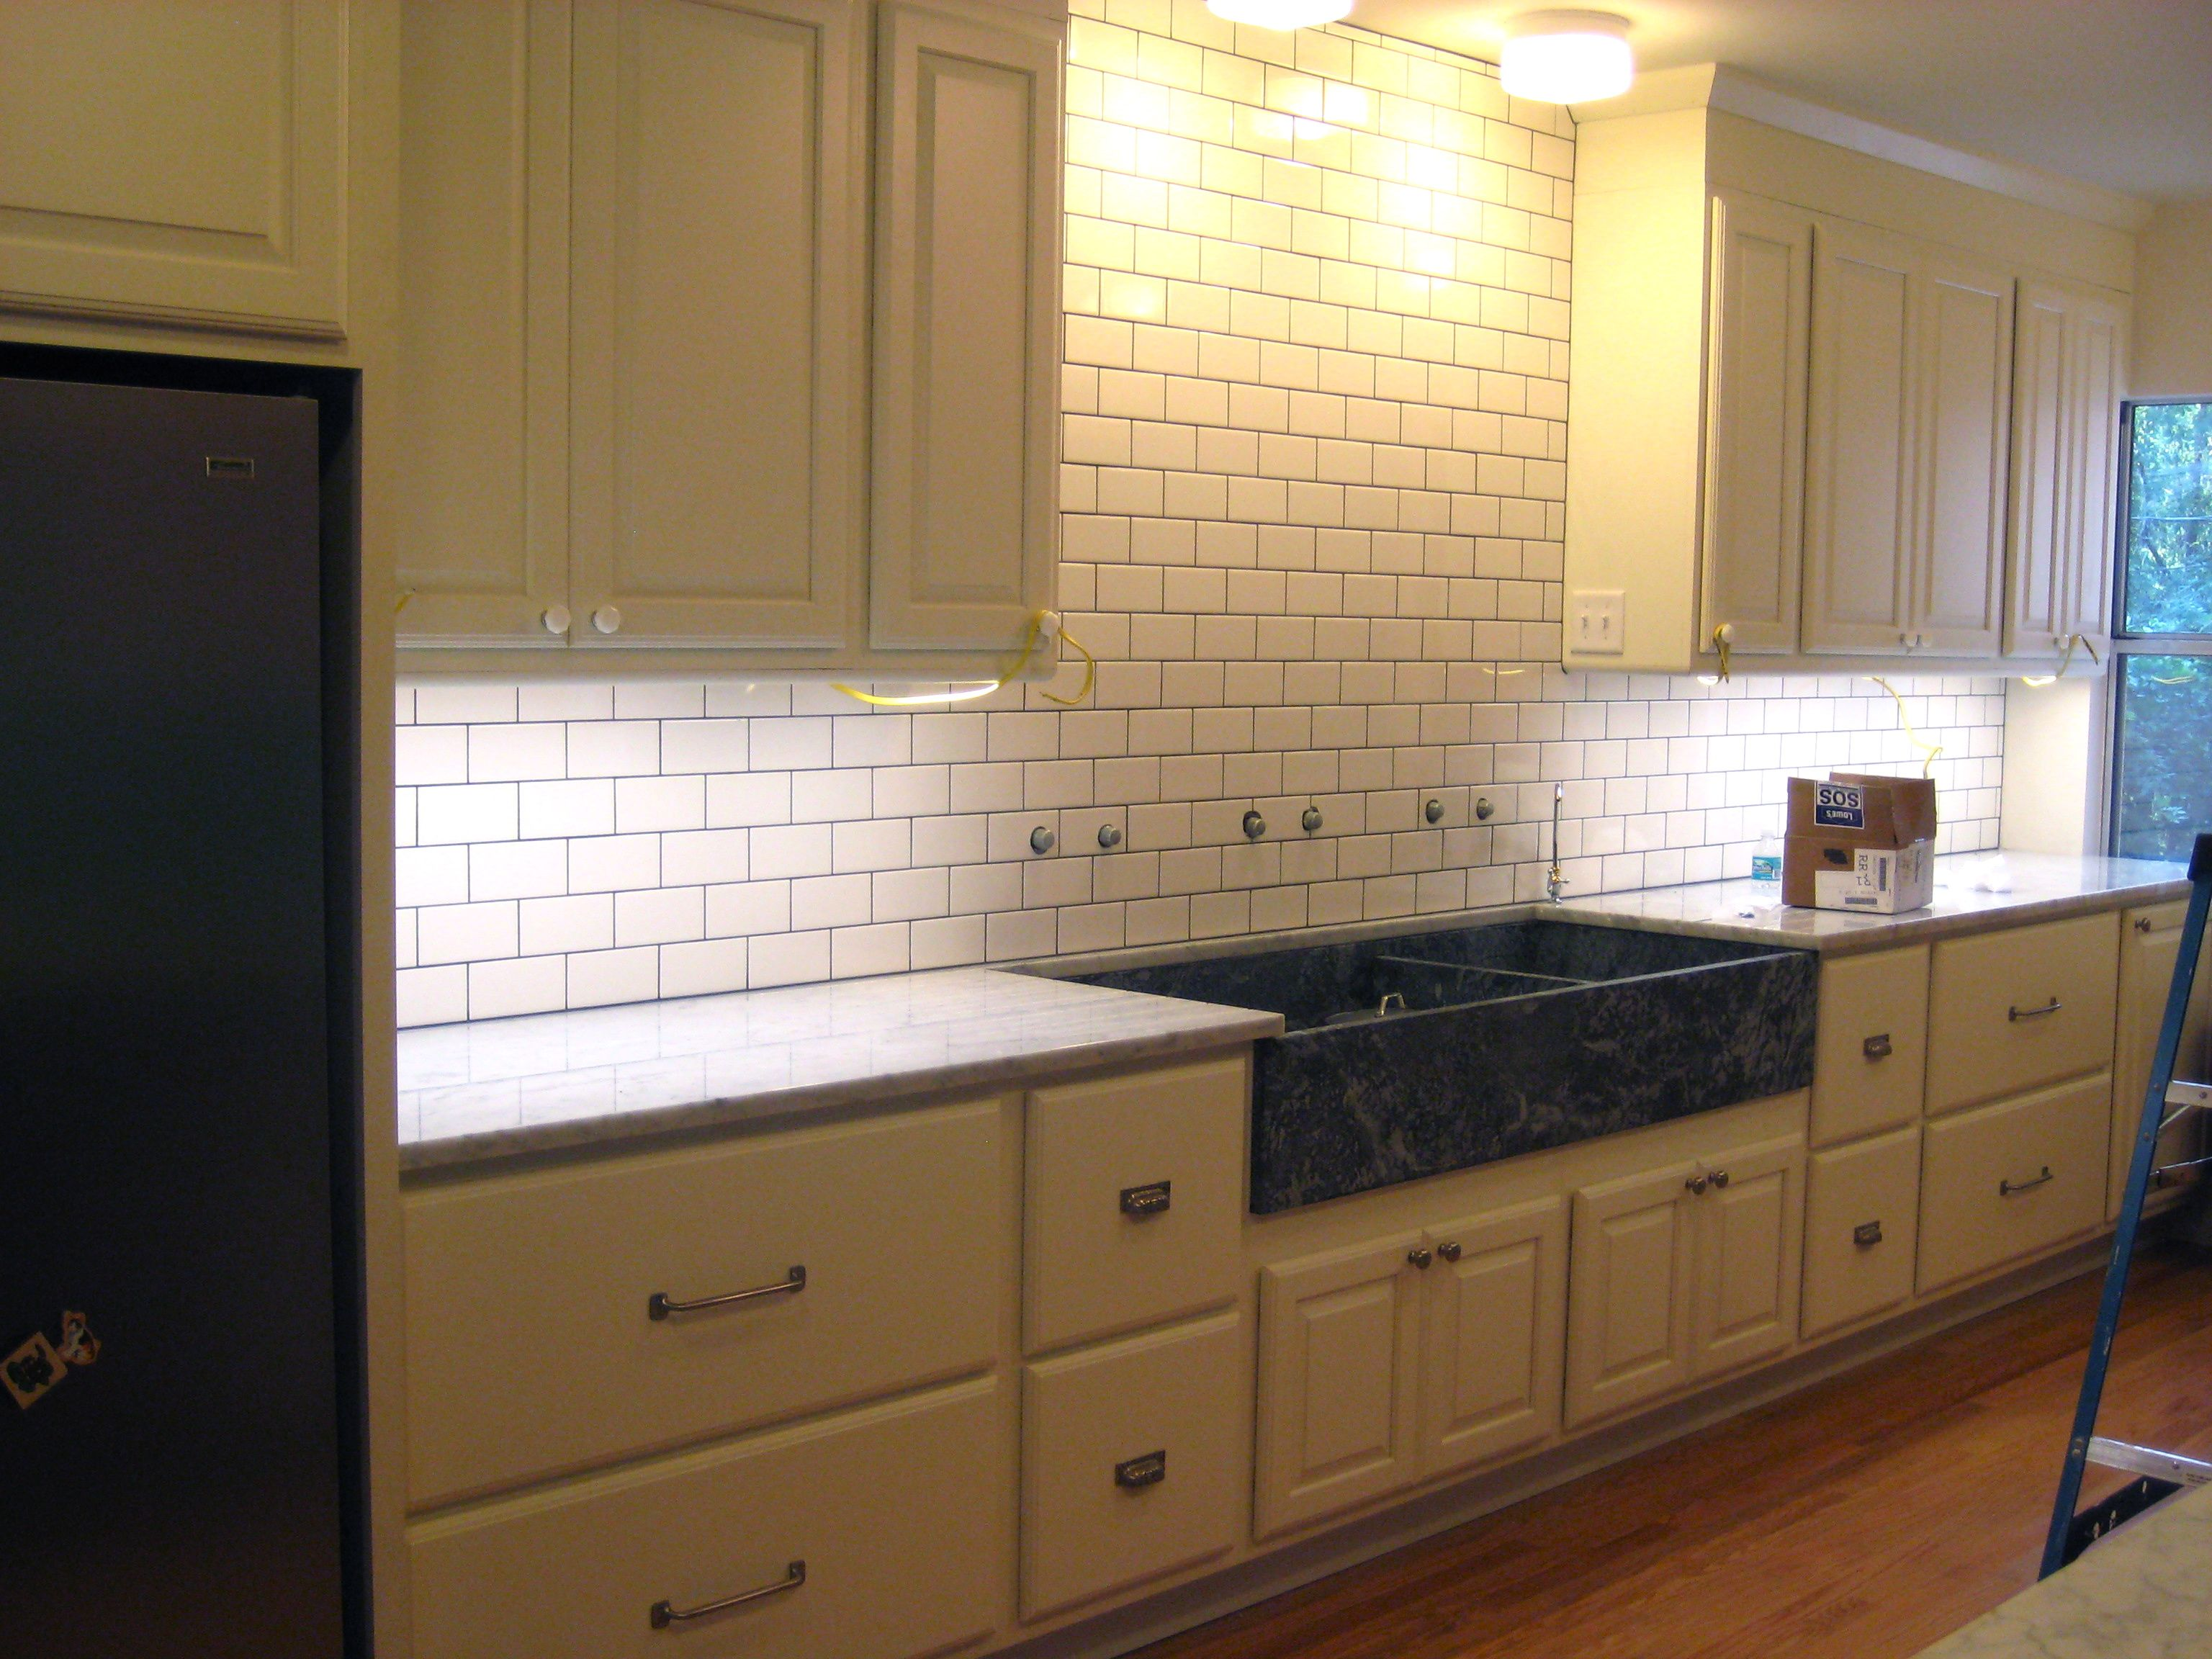 Kitchen Tiles Cream subway tile backsplash with expresso cabinets | white subway tile